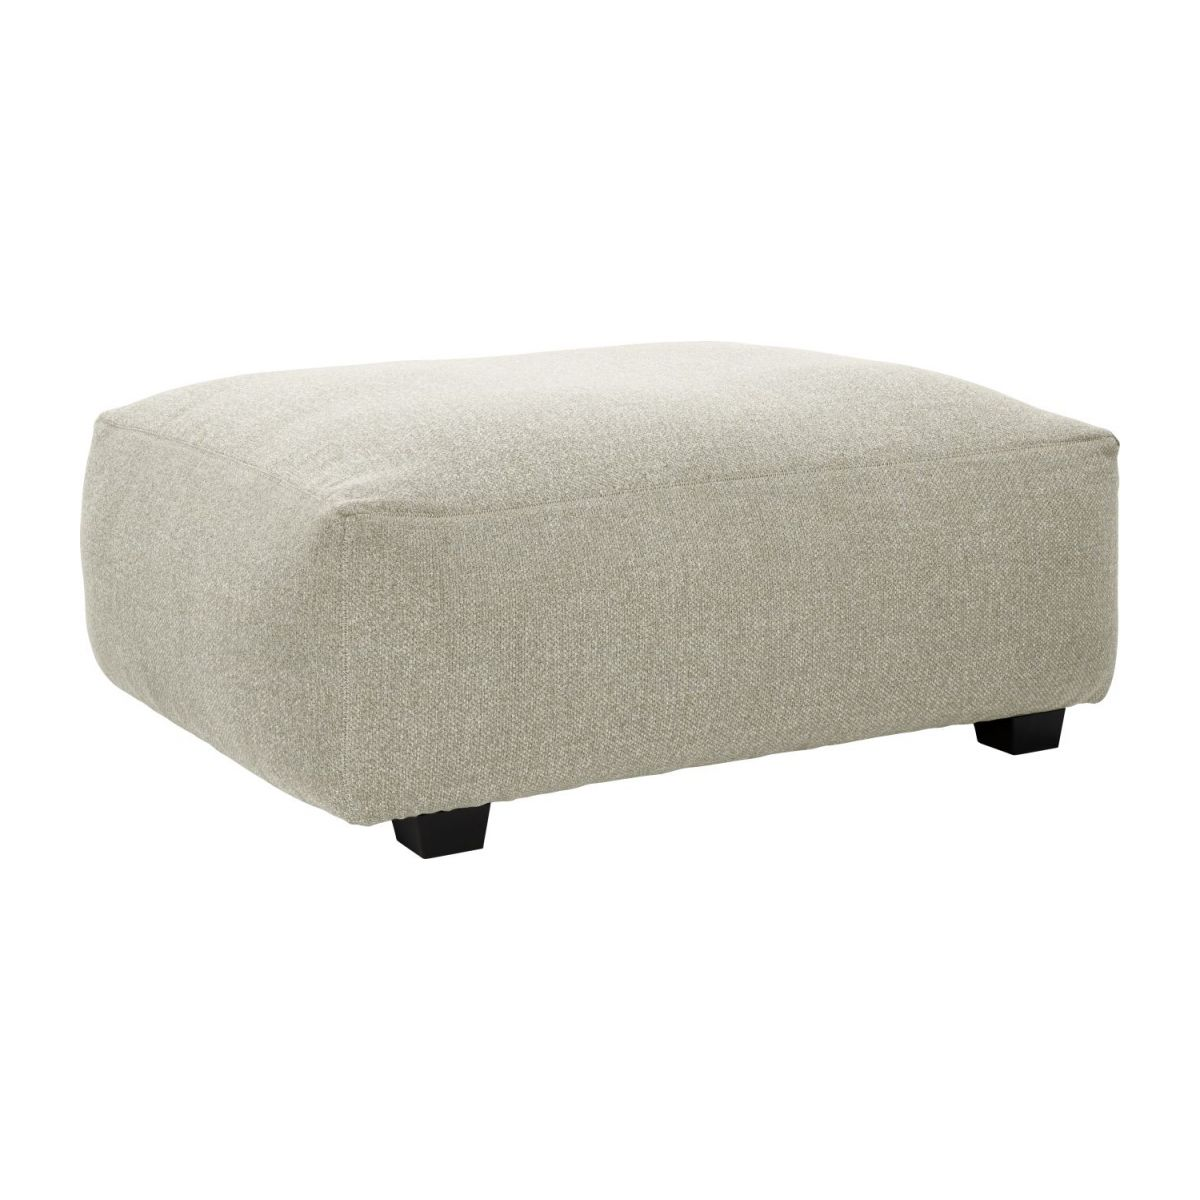 Footstool in Lecce fabric, nature n°1